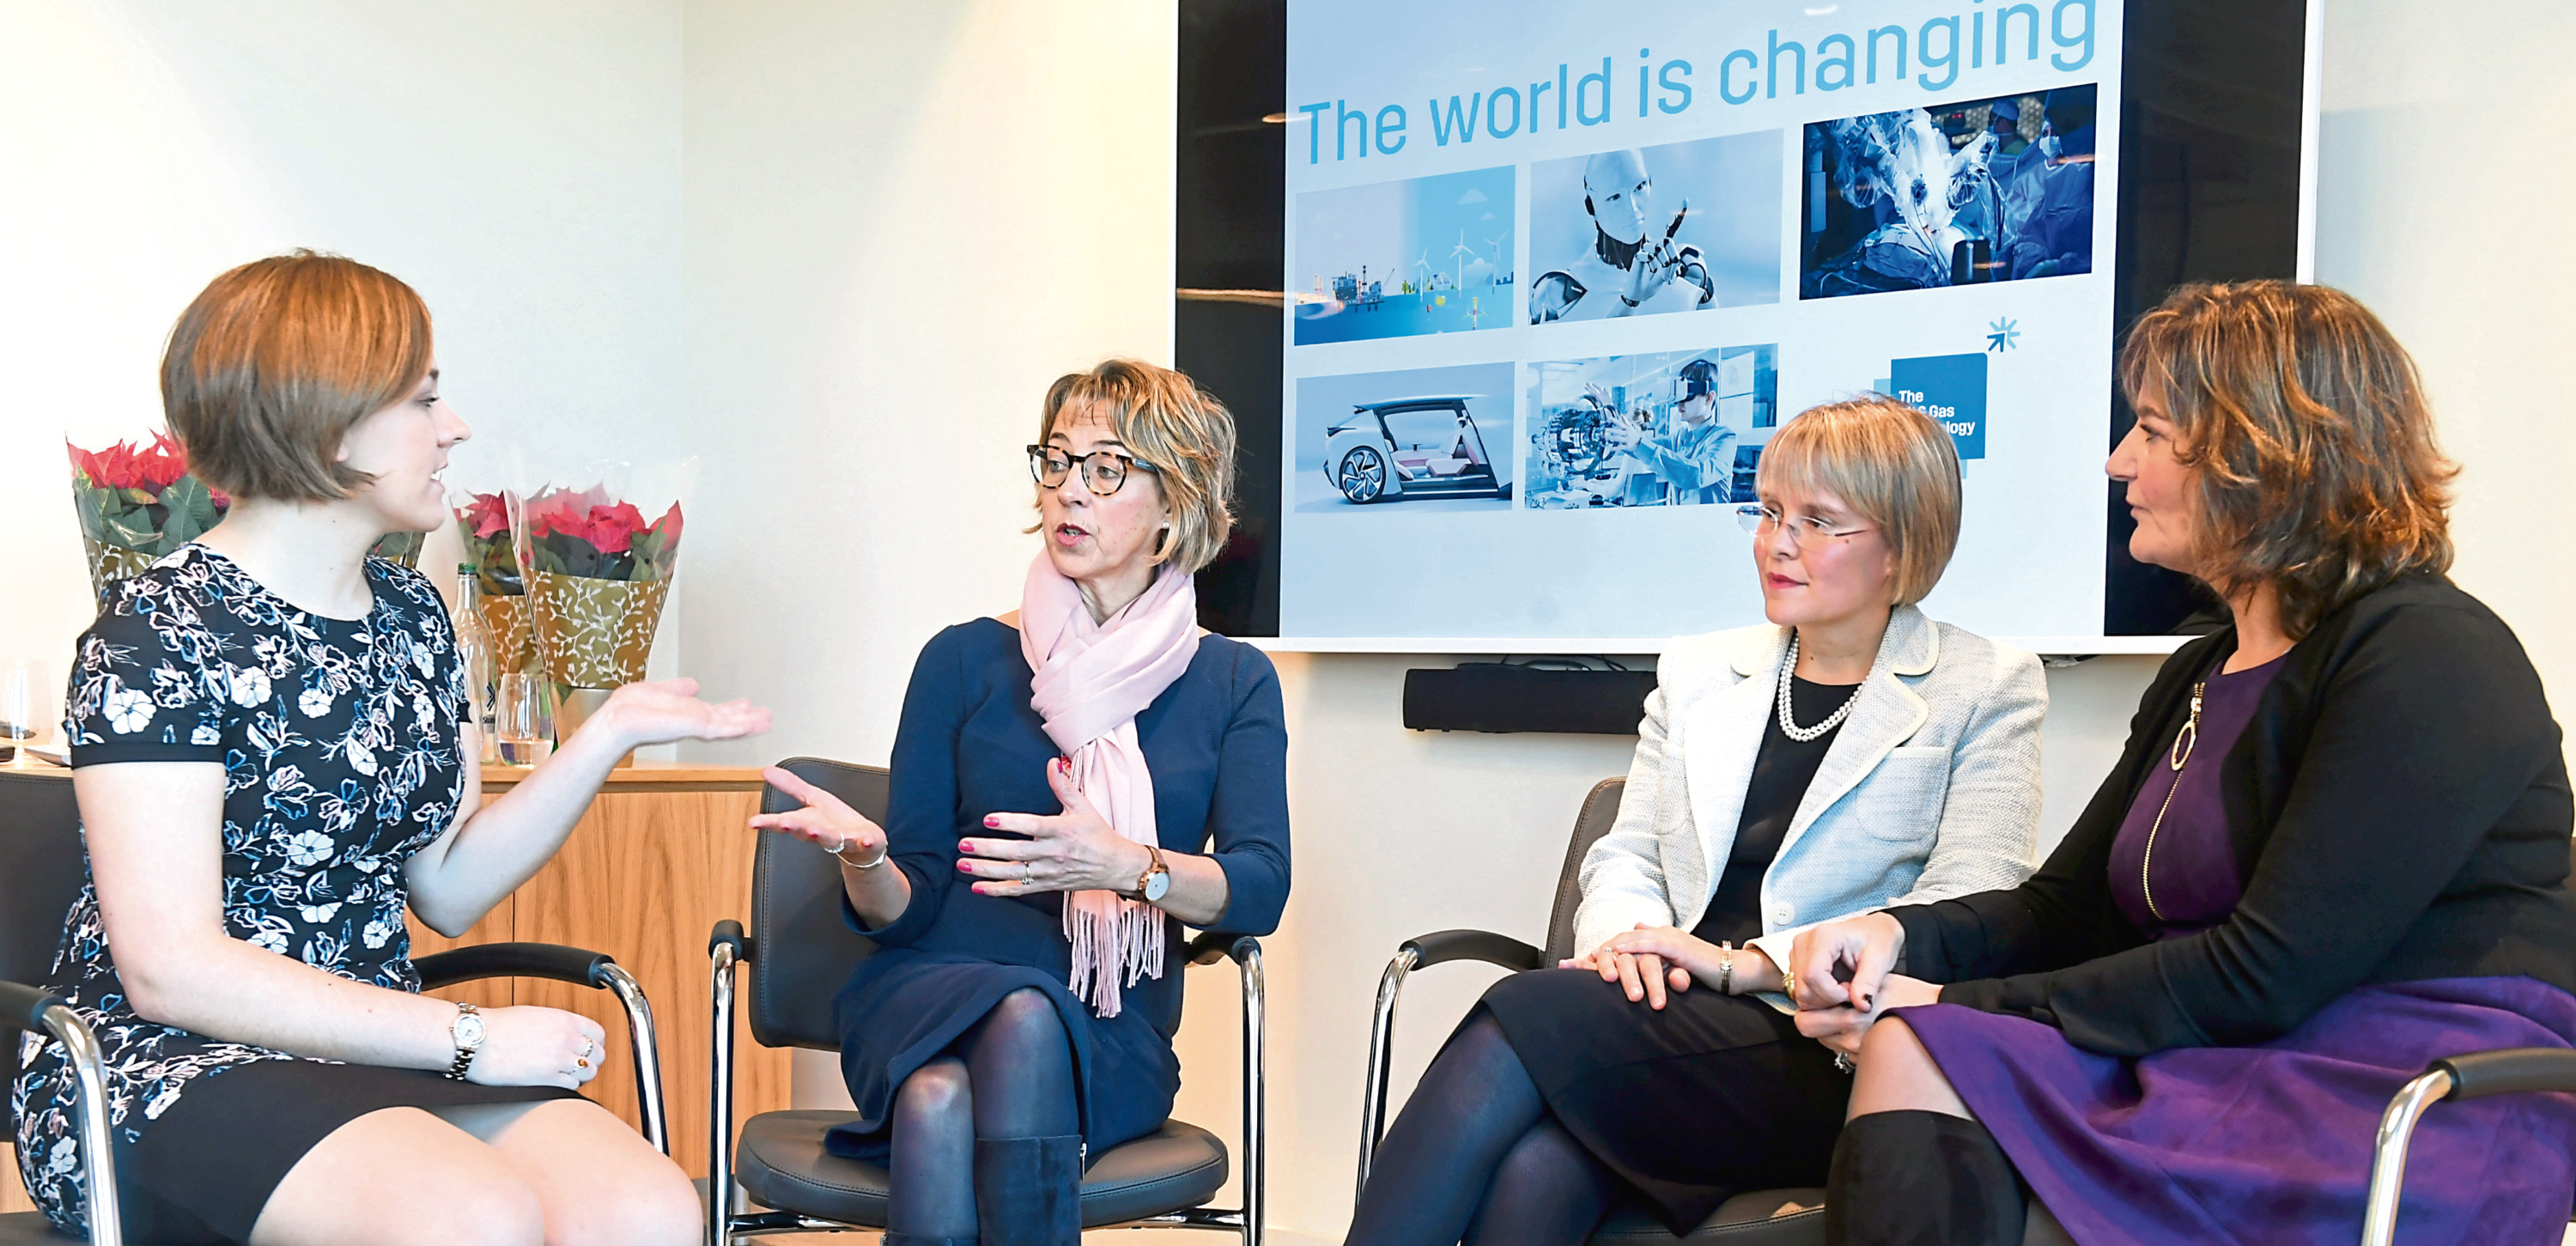 From left: Carla Taylor from the bank, Elizabeth Gammie from RGU, Ana Tomlinson from St Magarets School for Girls and Colette Cohen from the Oil and Gas Tecnology Centre.